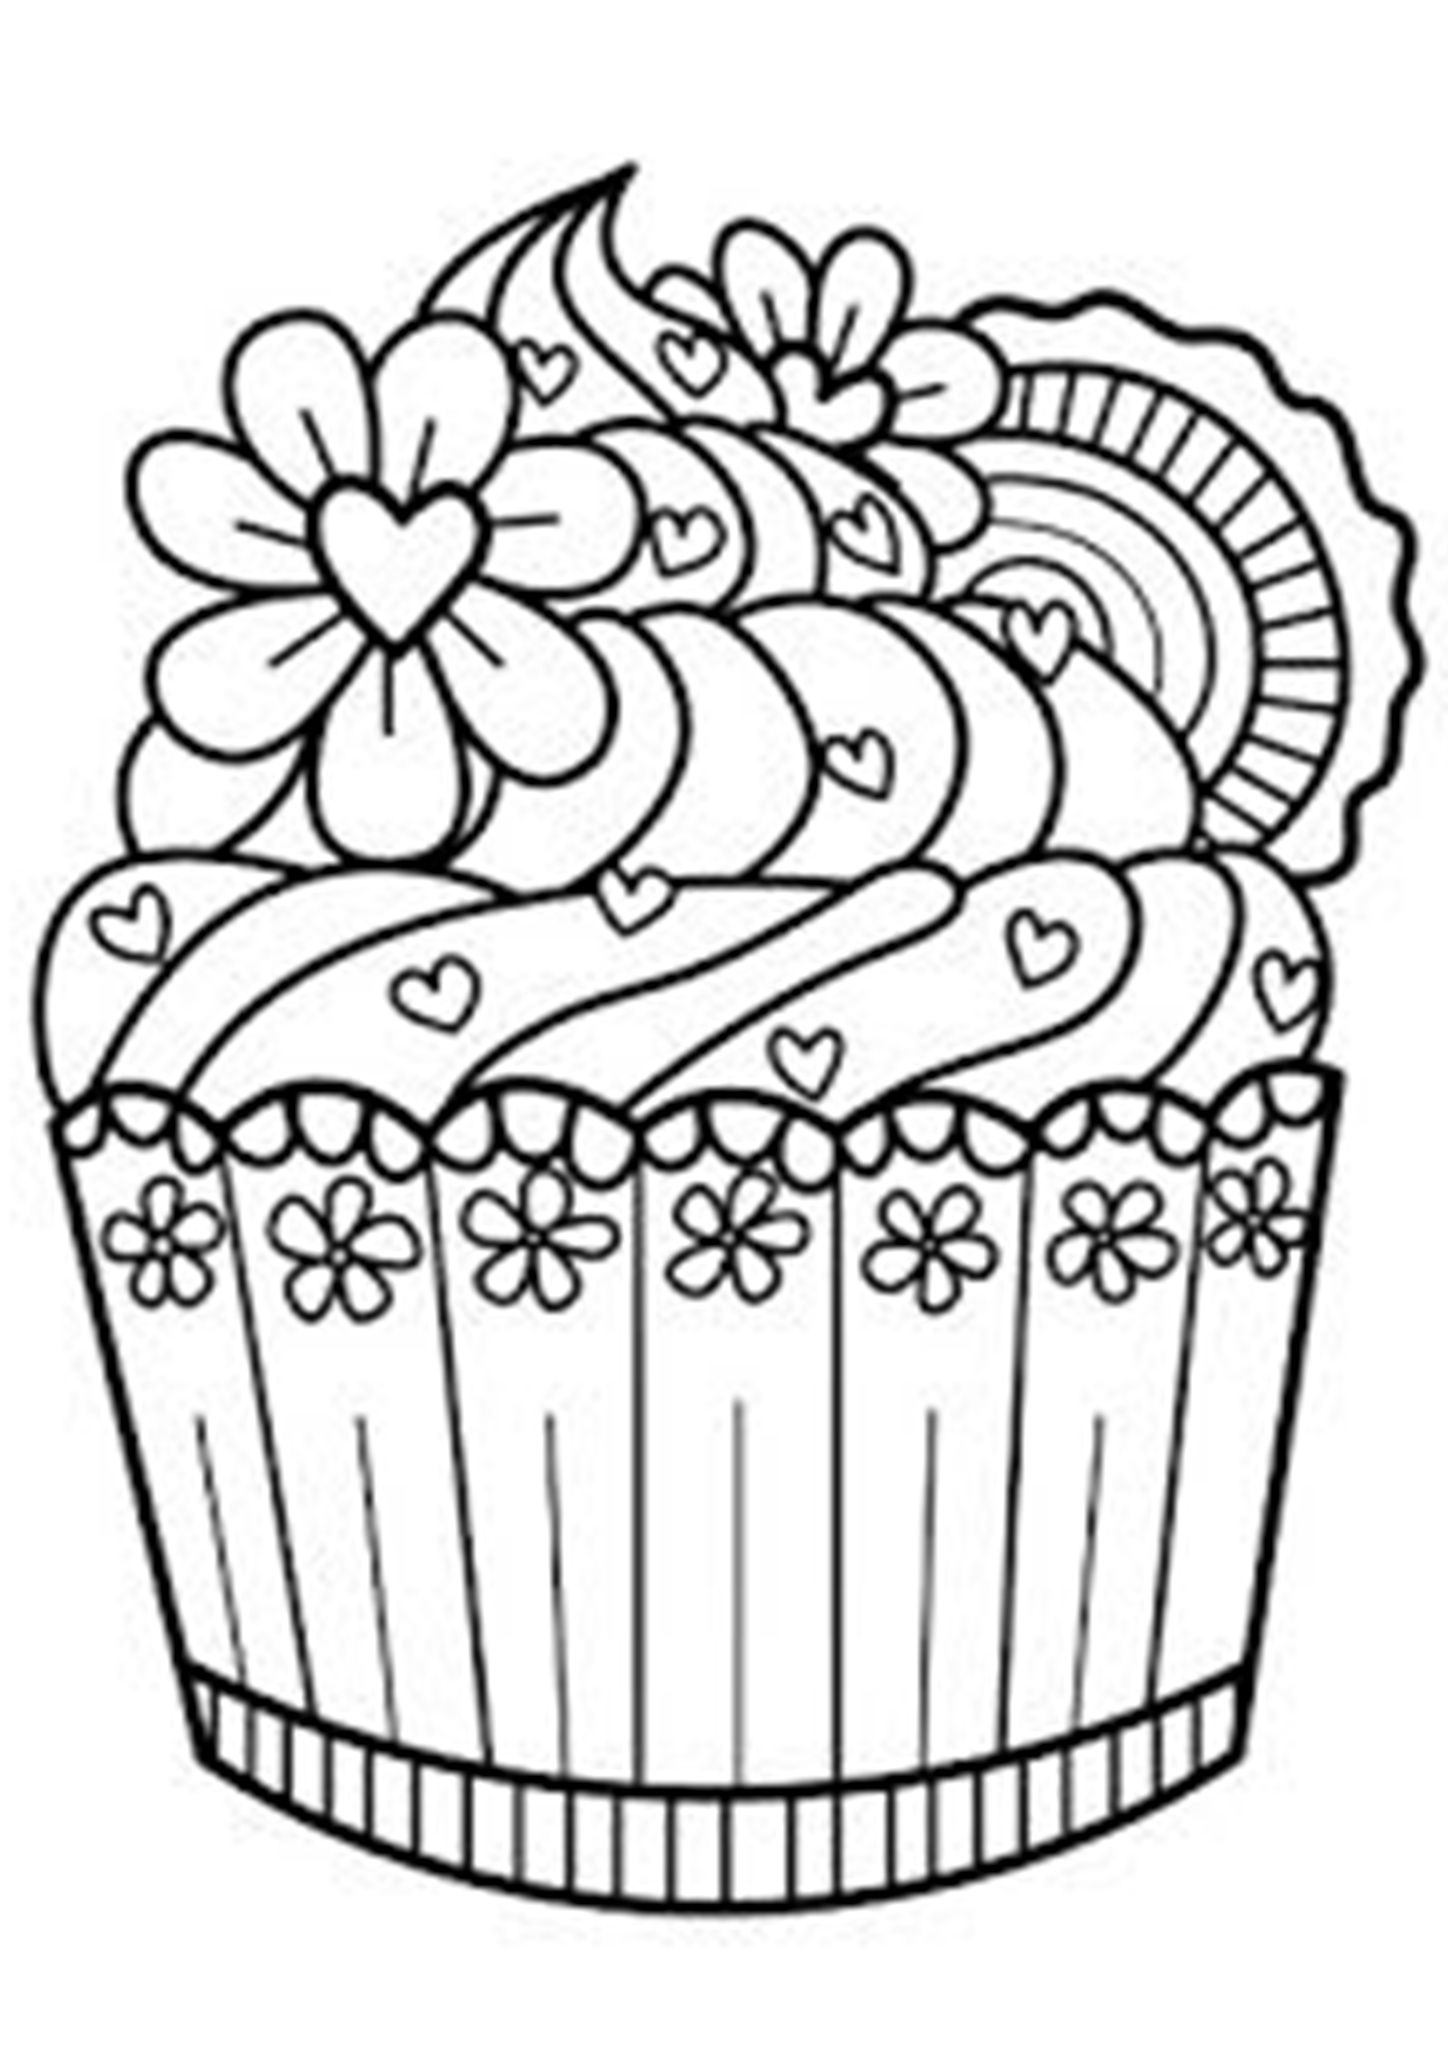 Pin on Dessert & Food Coloring Pages